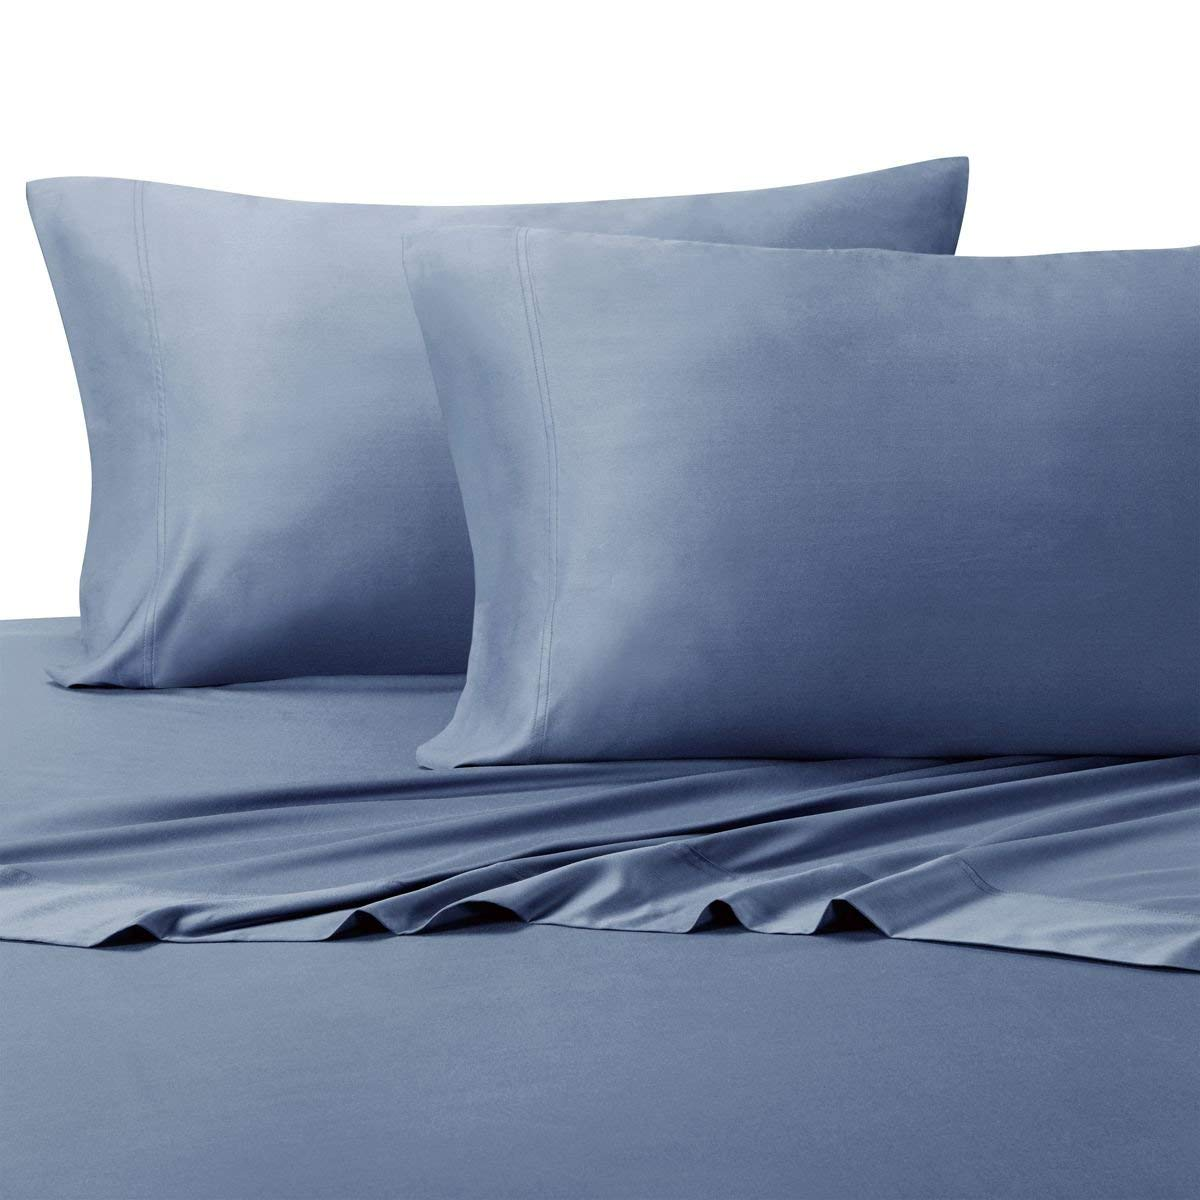 Royal Hotel Silky Soft Bamboo King Cotton Sheet Set - Periwinkle